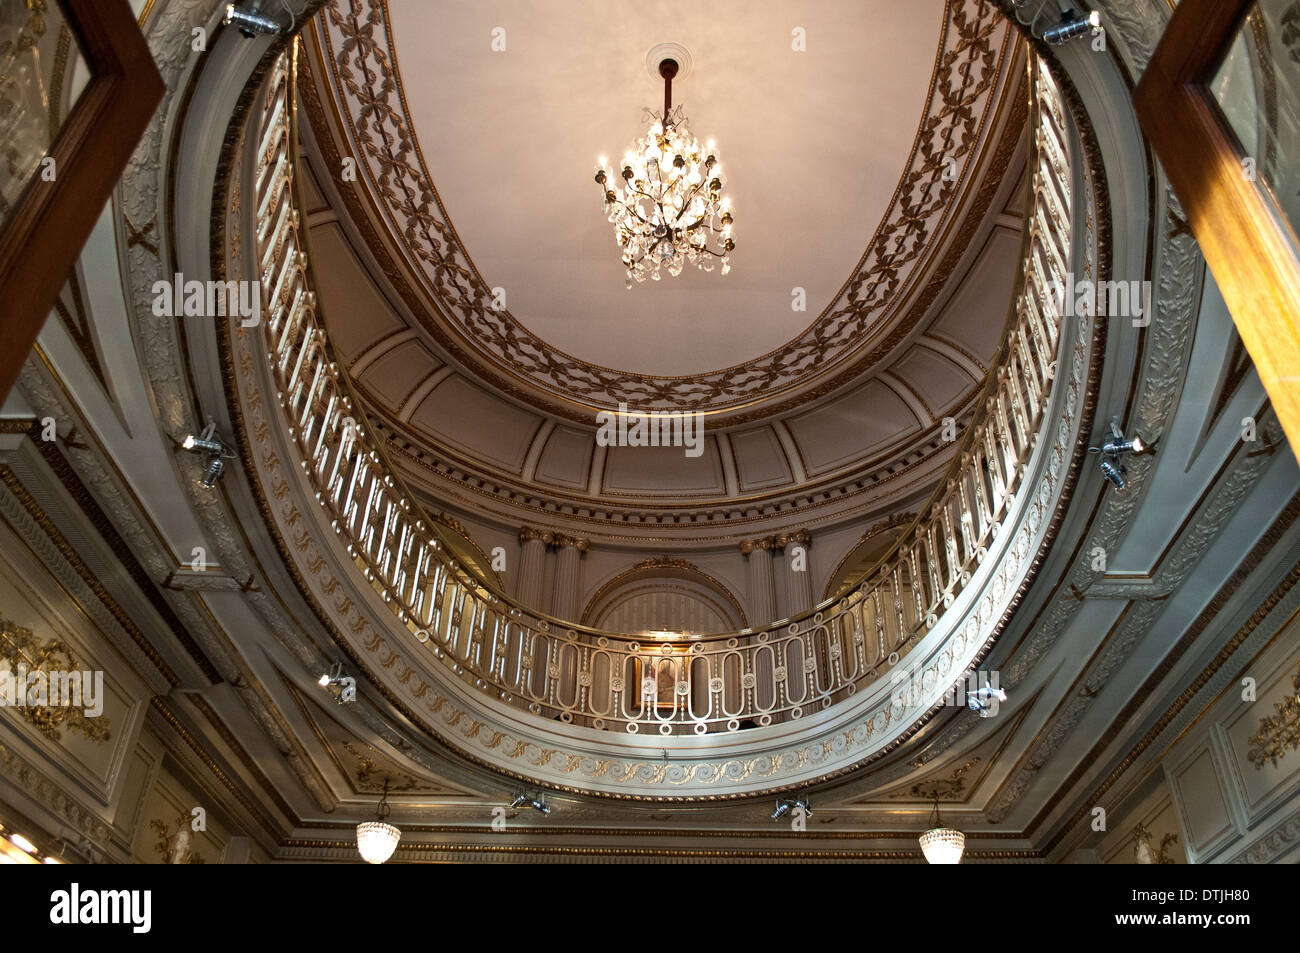 Gielgud theatre foyer ceiling in Shaftesbury Avenue, London, WC2, UK - Stock Image